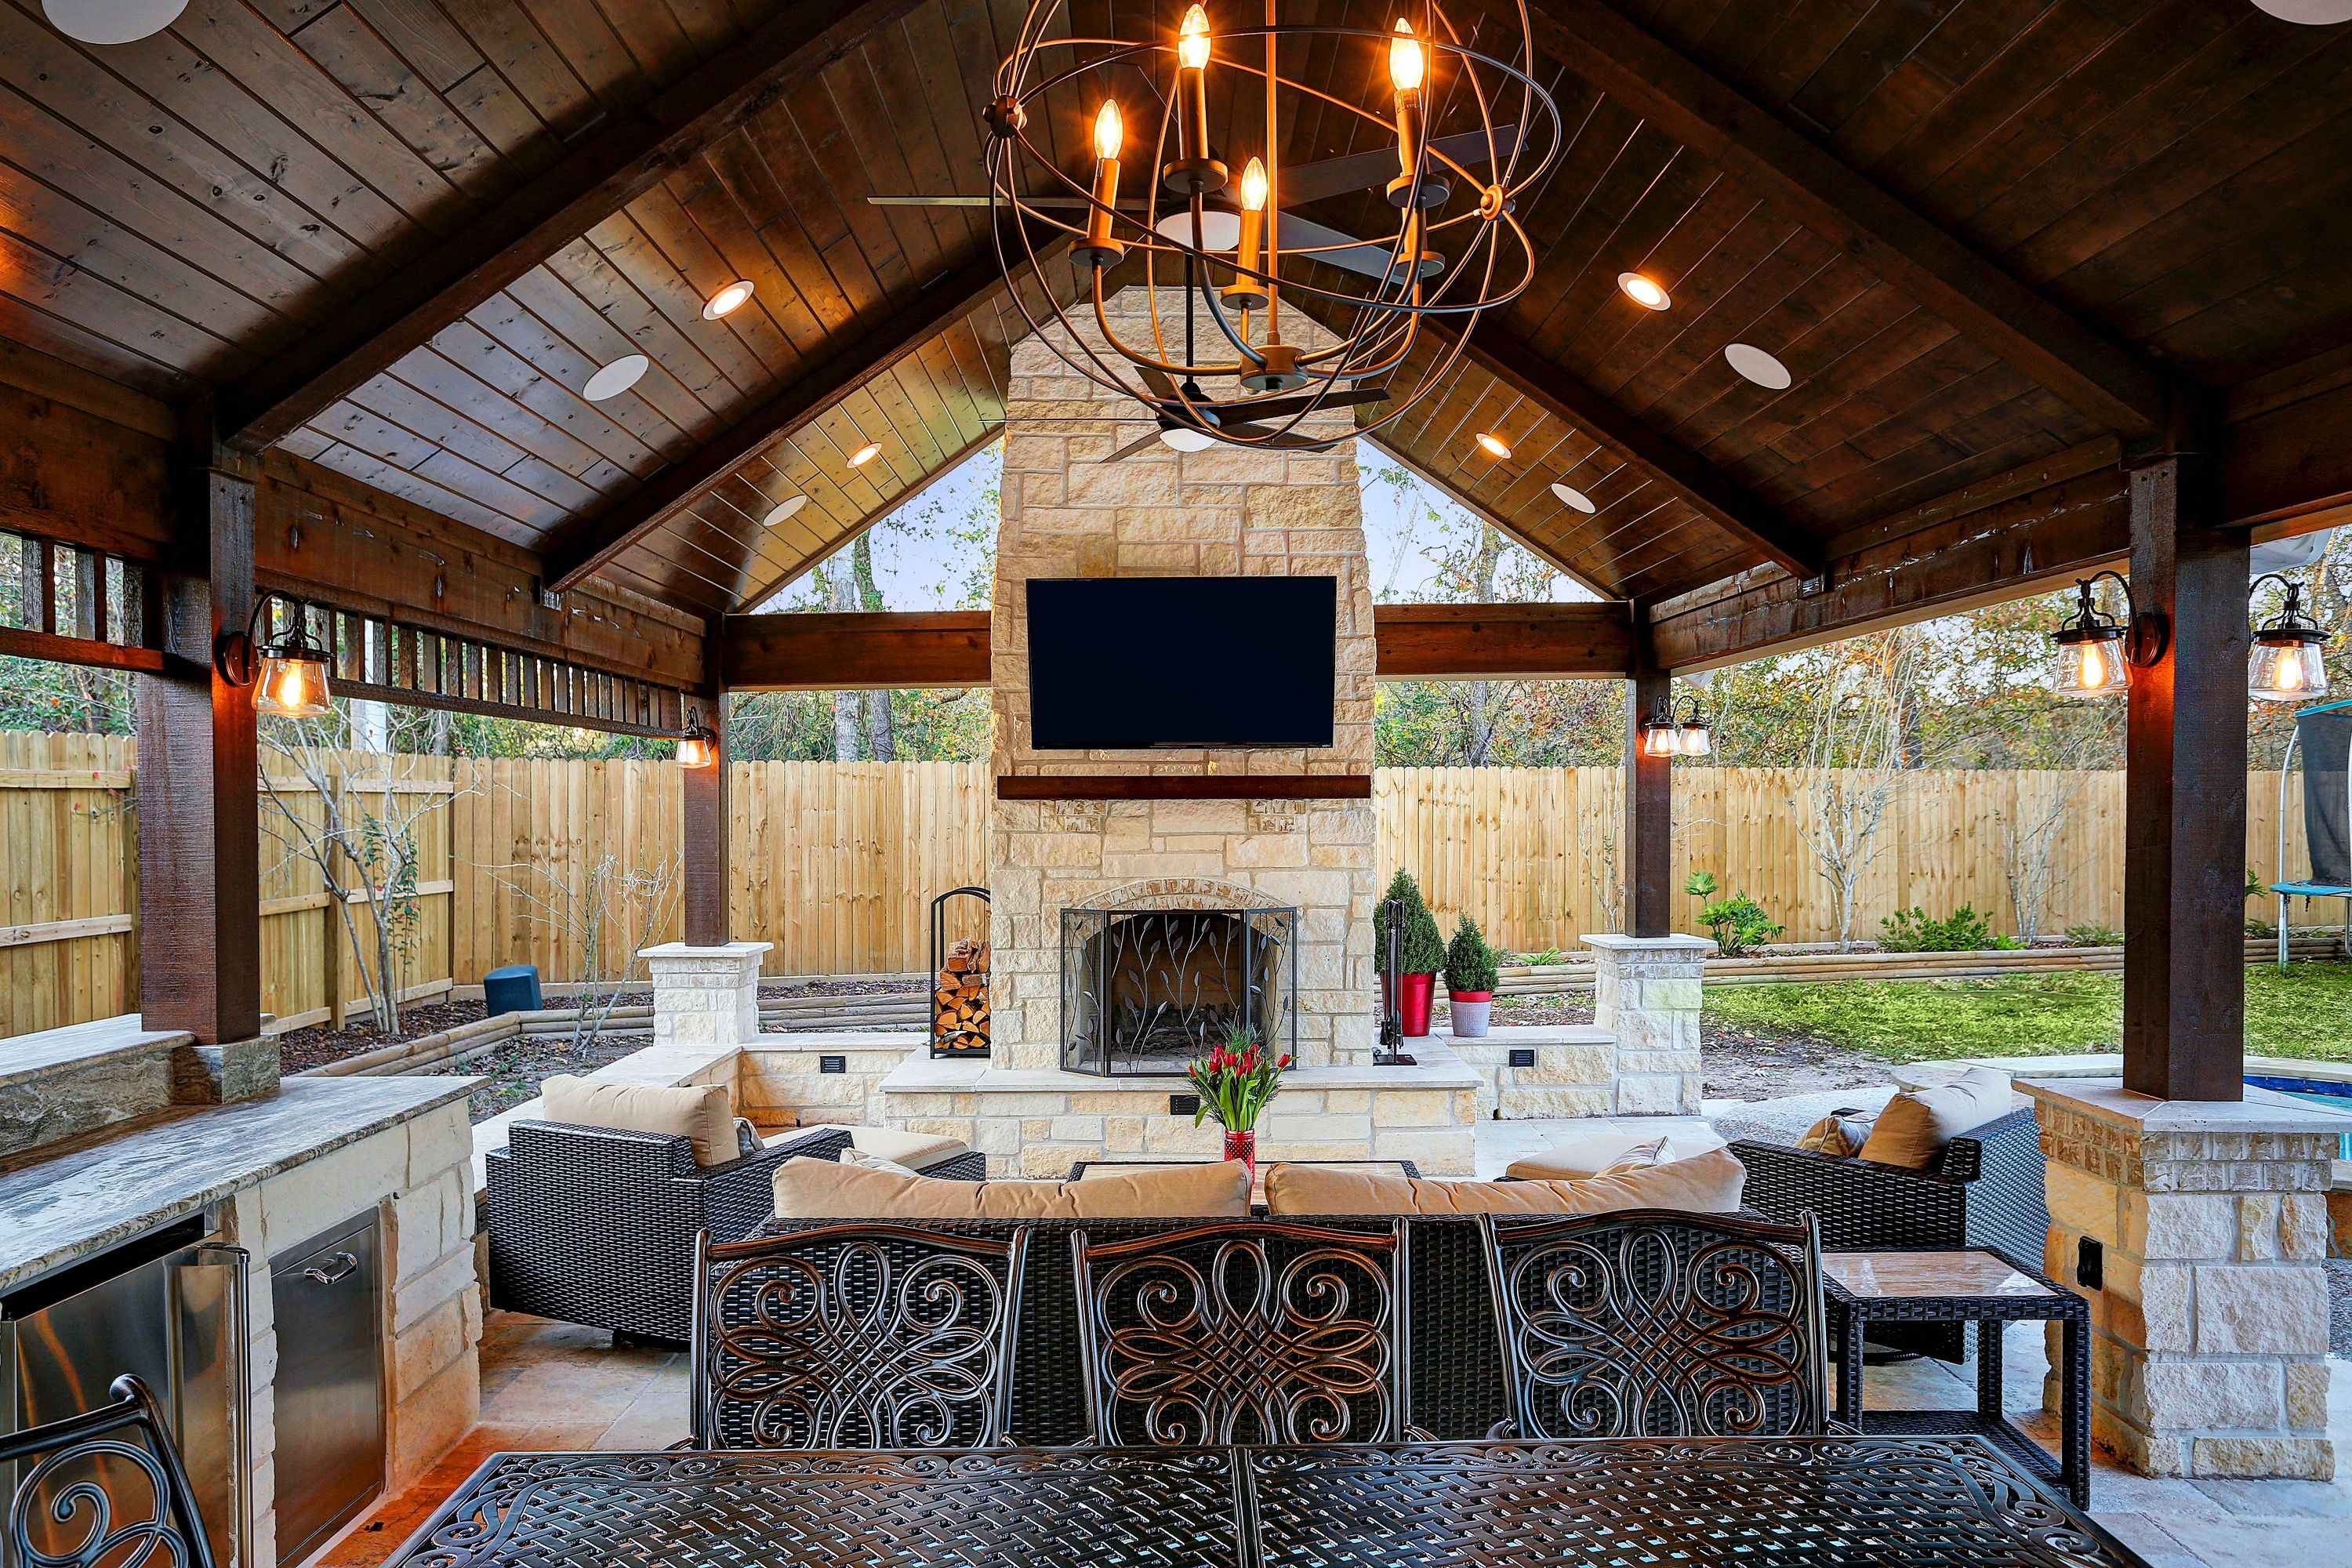 Patio Cover Outdoor Fireplace Vaulted Ceiling Outdoor Kitchen Outdoor Living Patio Patio Design Outdoor Fireplace Designs